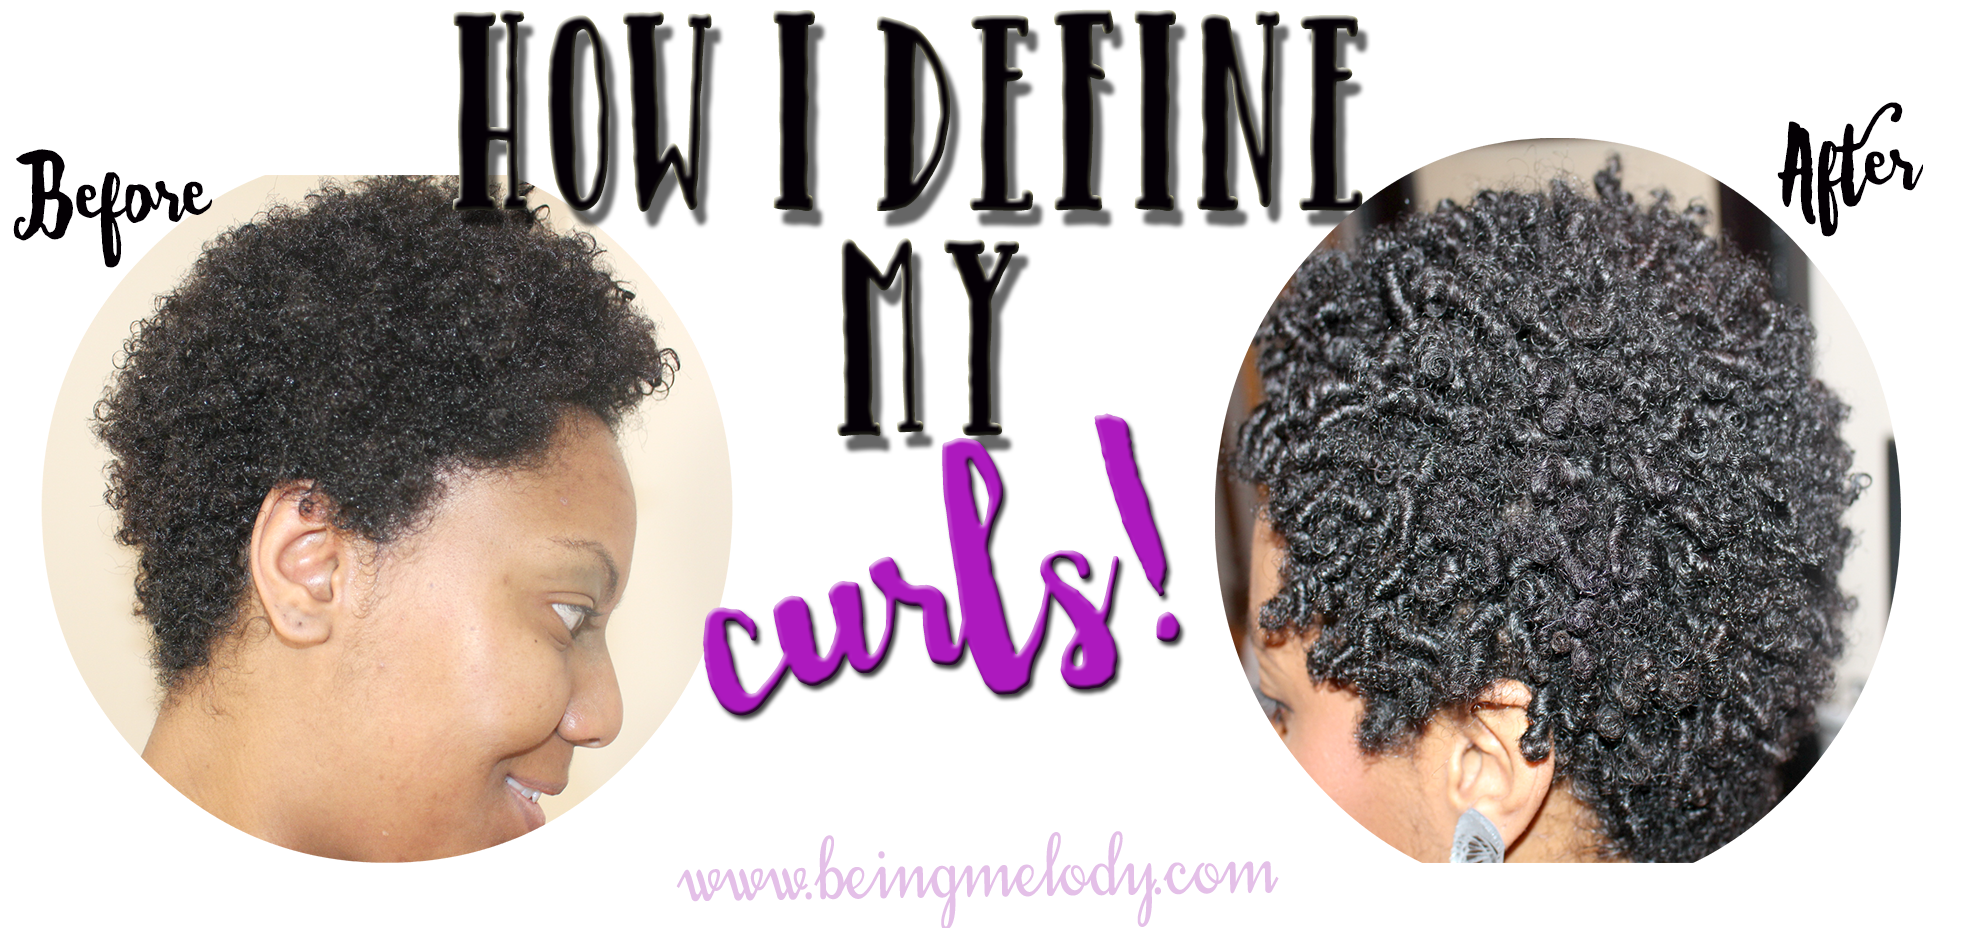 Products To Use On Natural Hair To Make It Curly